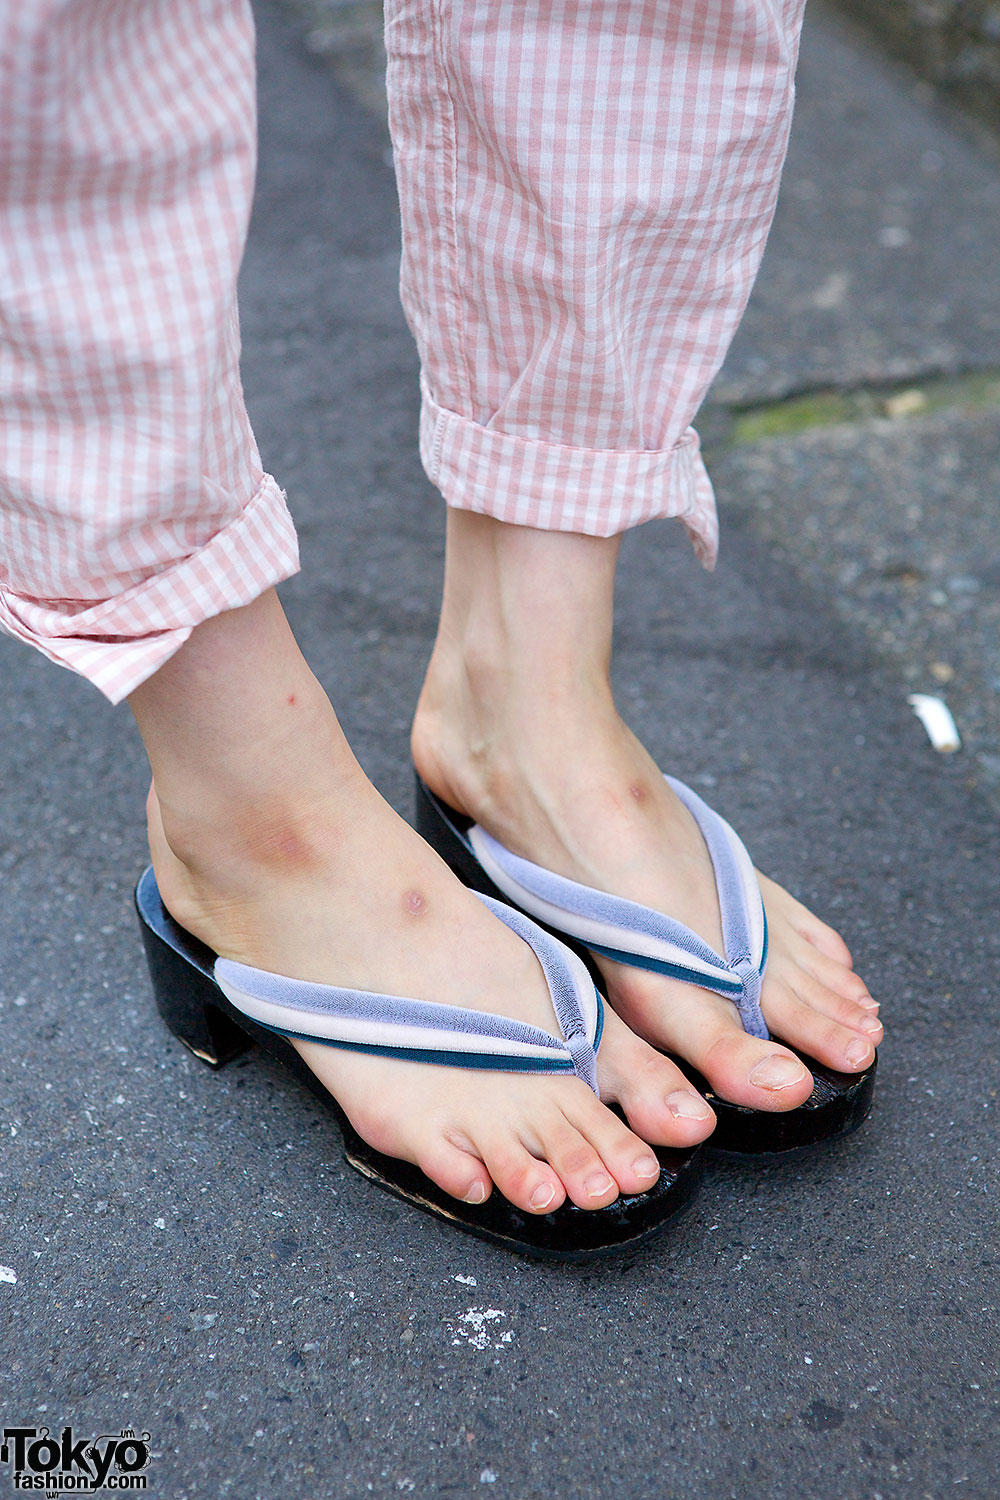 Simple Japanese Girls Wear Kimono Parasol And Geta Japan Sandal Footwear